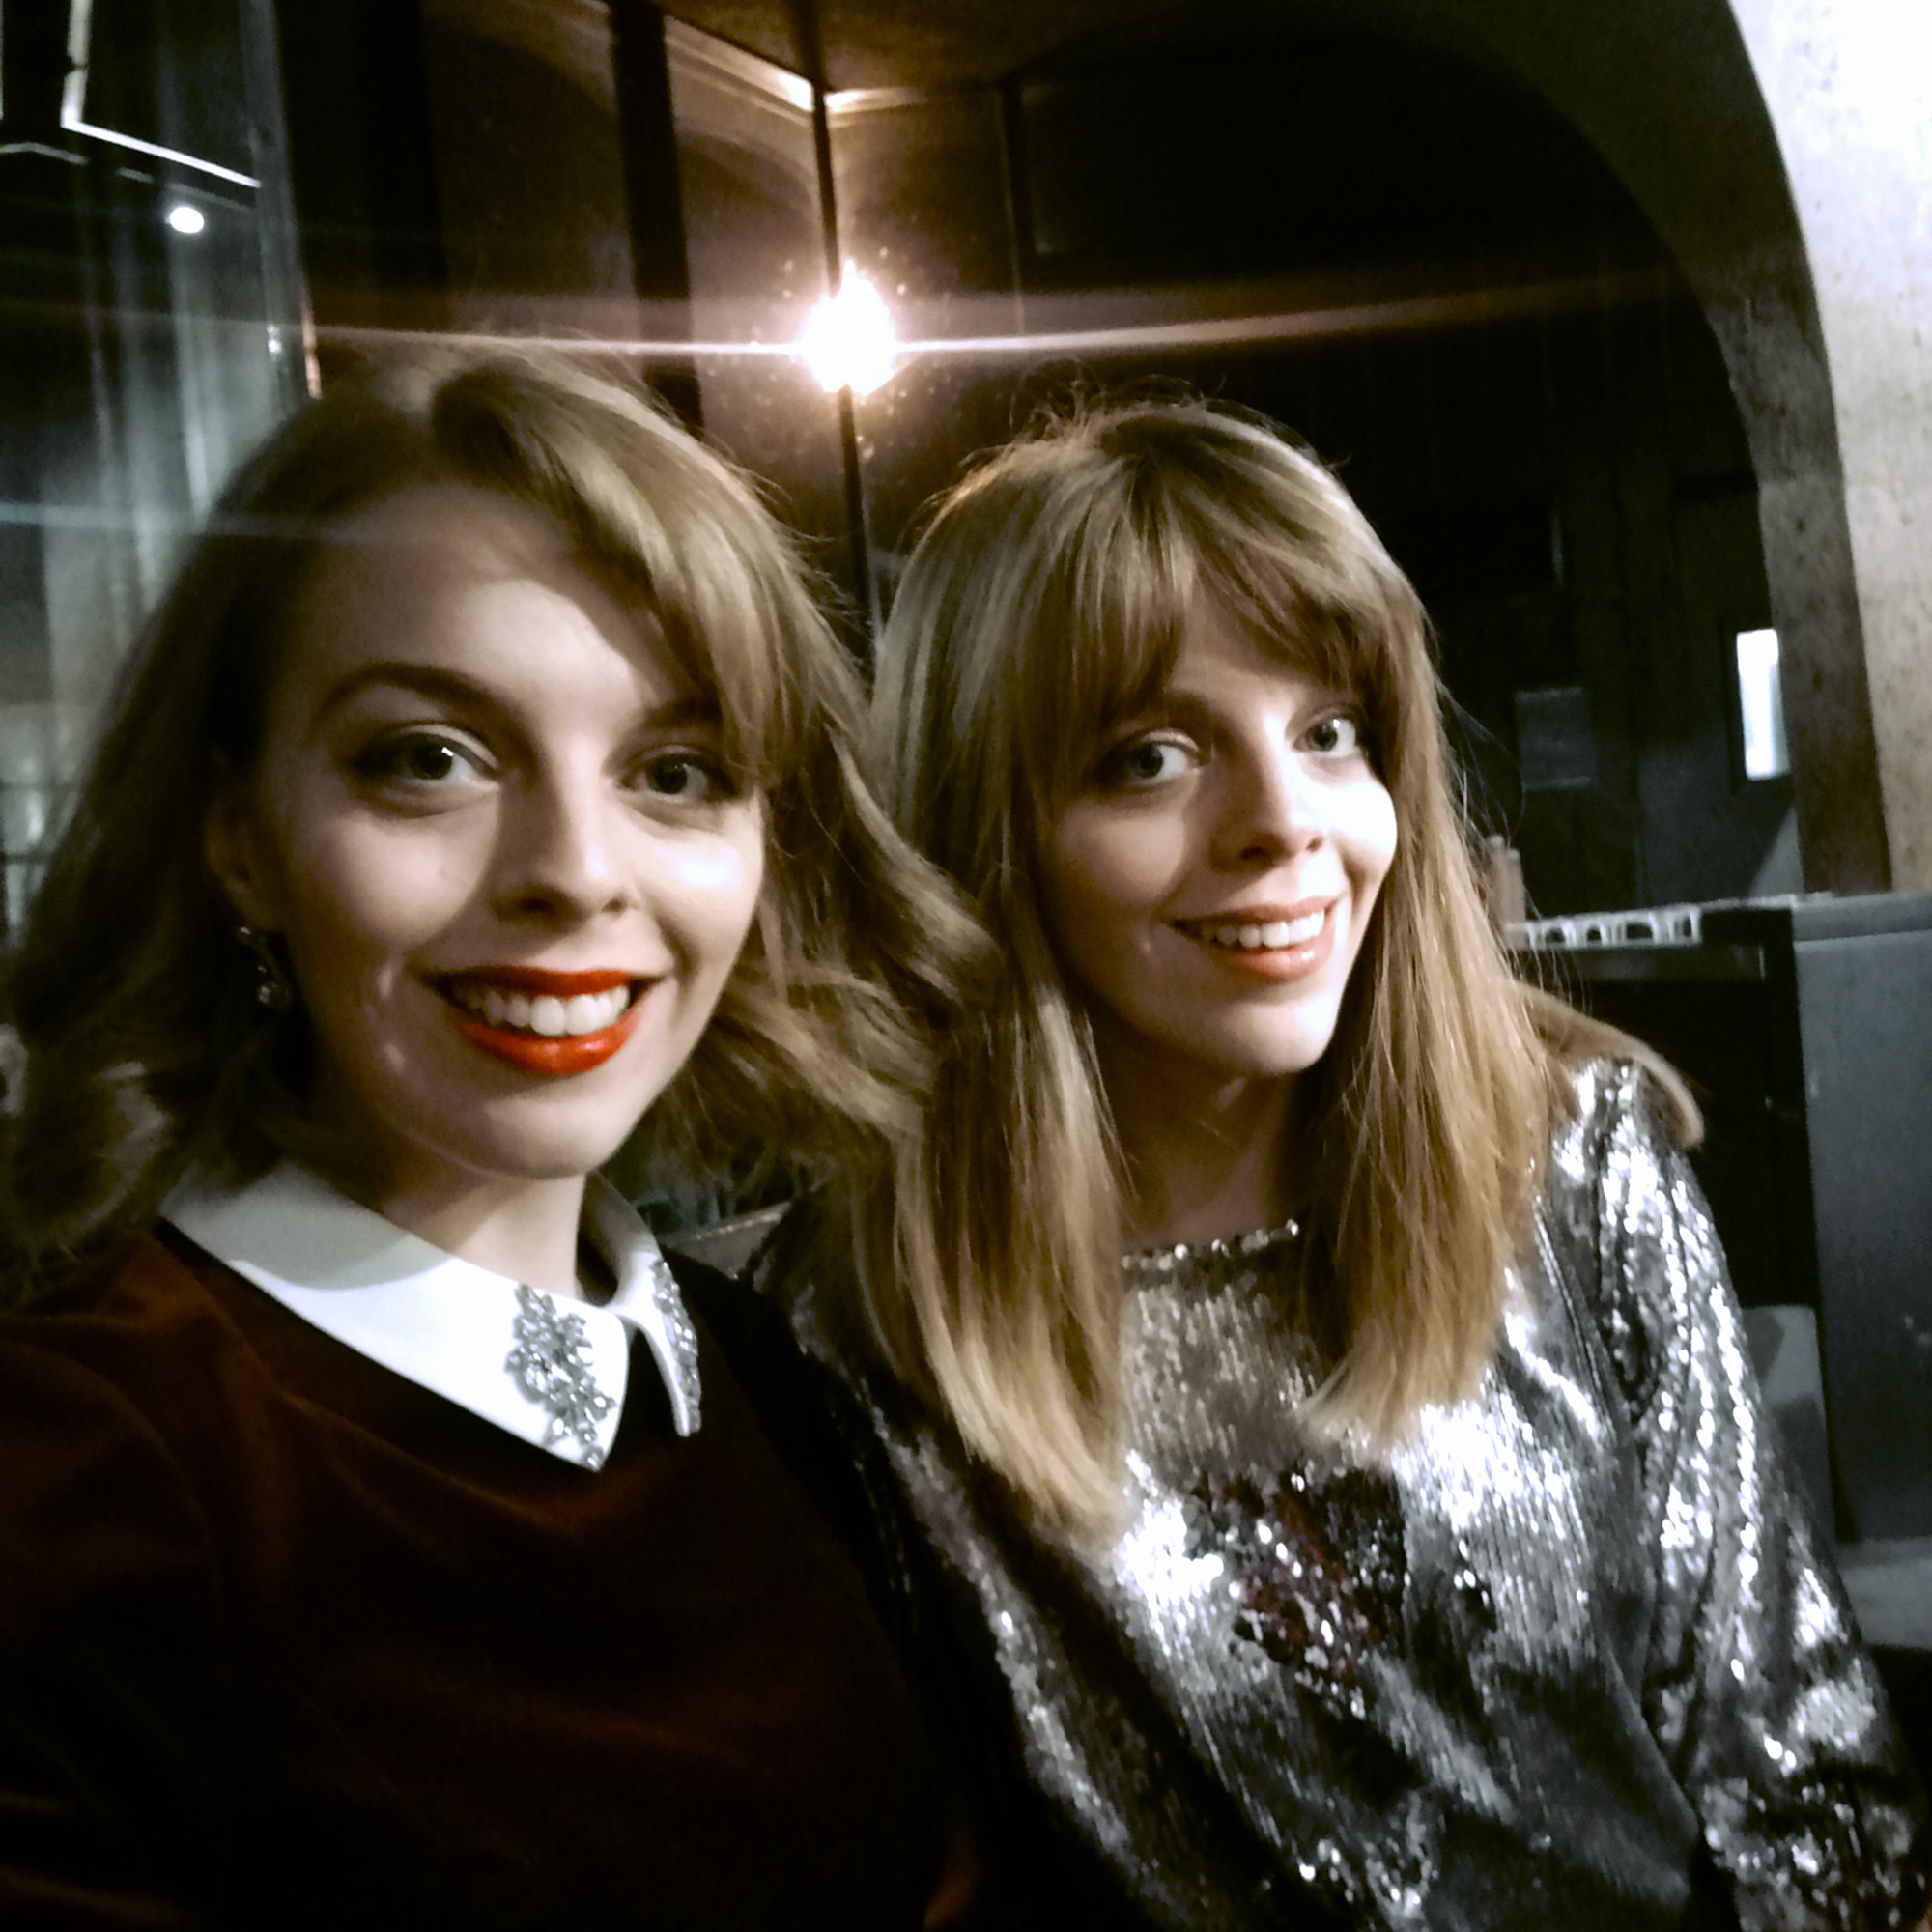 Chloe-and-Abigail-Buttercrumble-at-York-Culture-Awards.jpg